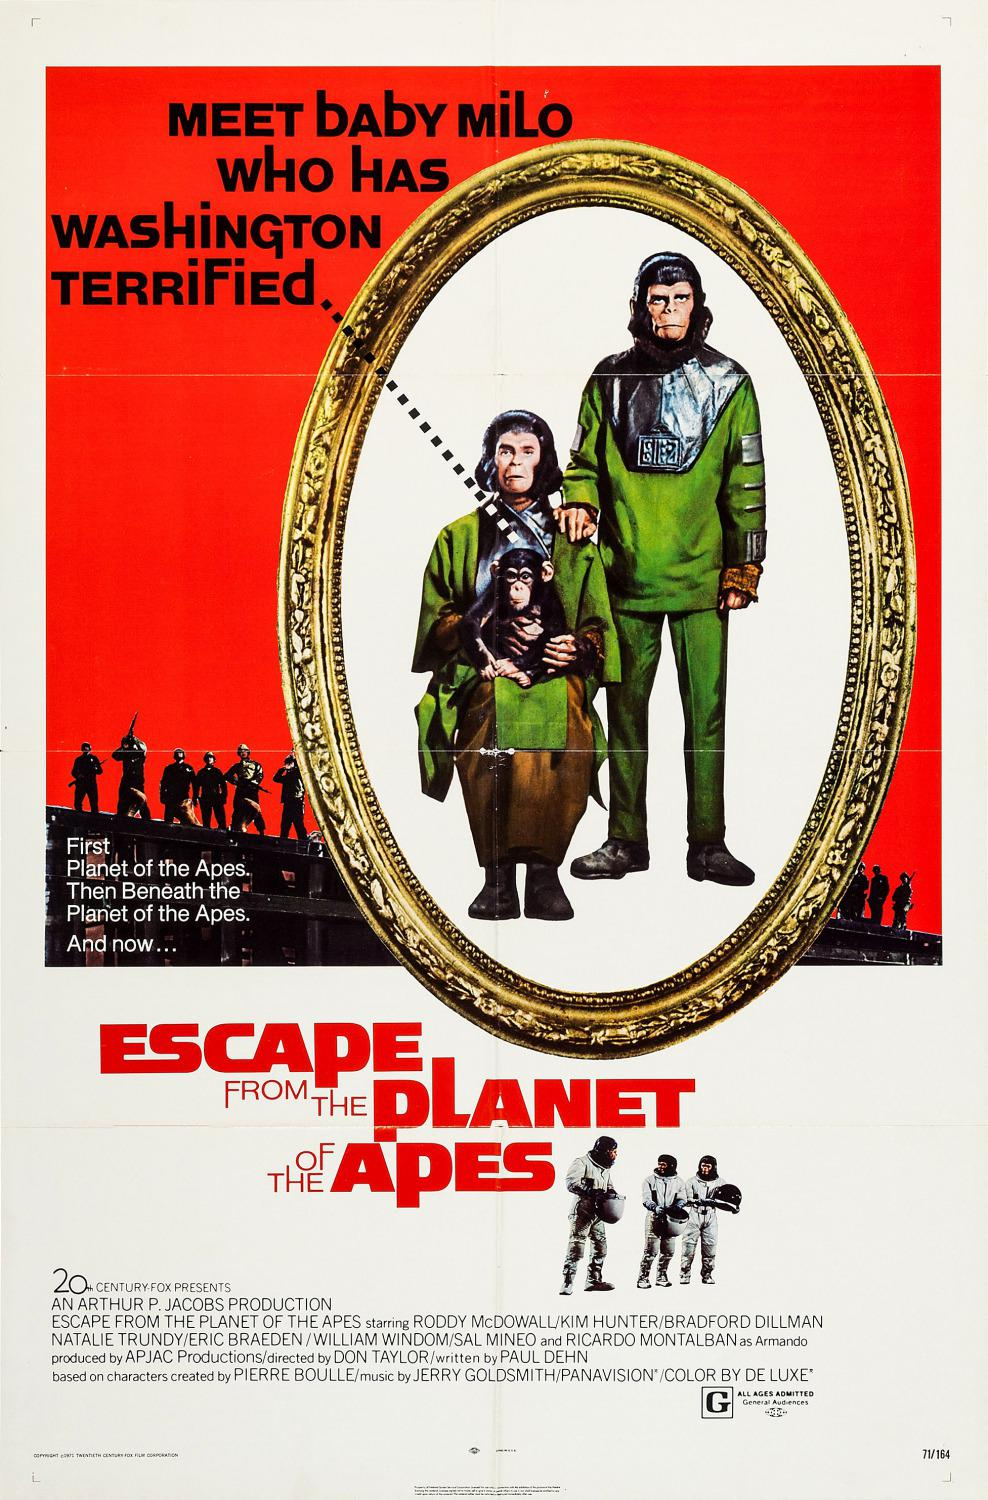 Apes 3 - Fuga dal Pianeta delle Scimmie - Escape from the Planet of the Apes (Classic 1971)